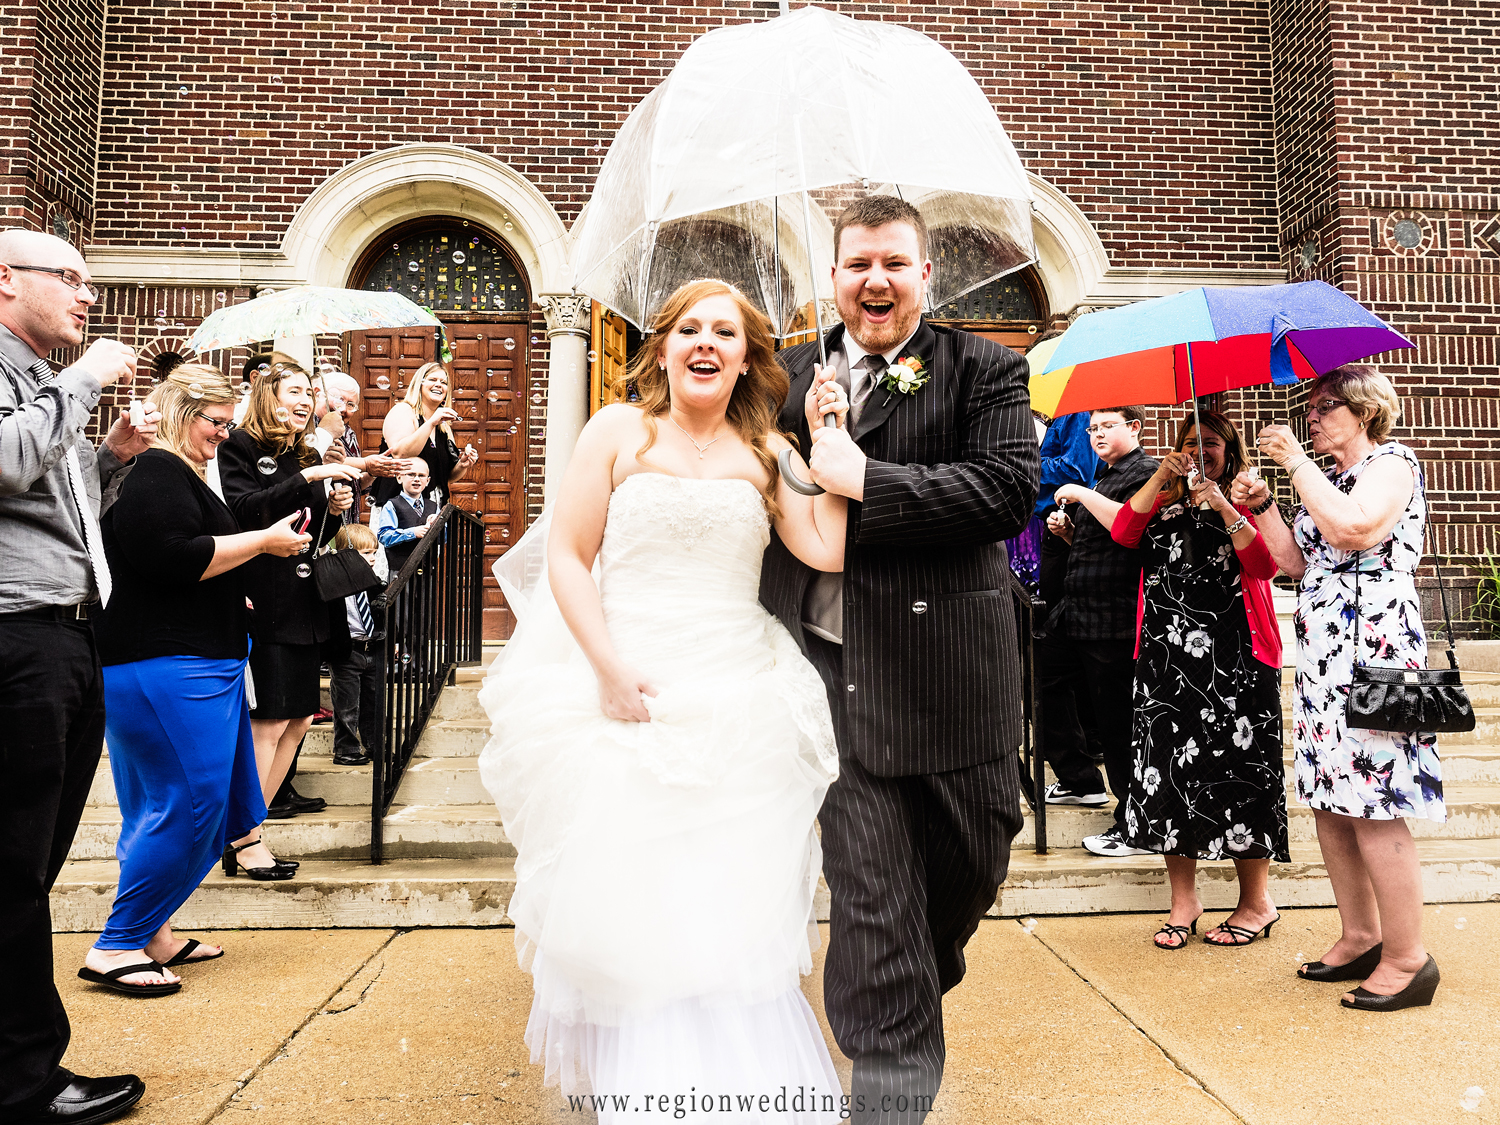 Bride and groom exit the church amidst bubbles with an umbrella to keep dry from the rain.